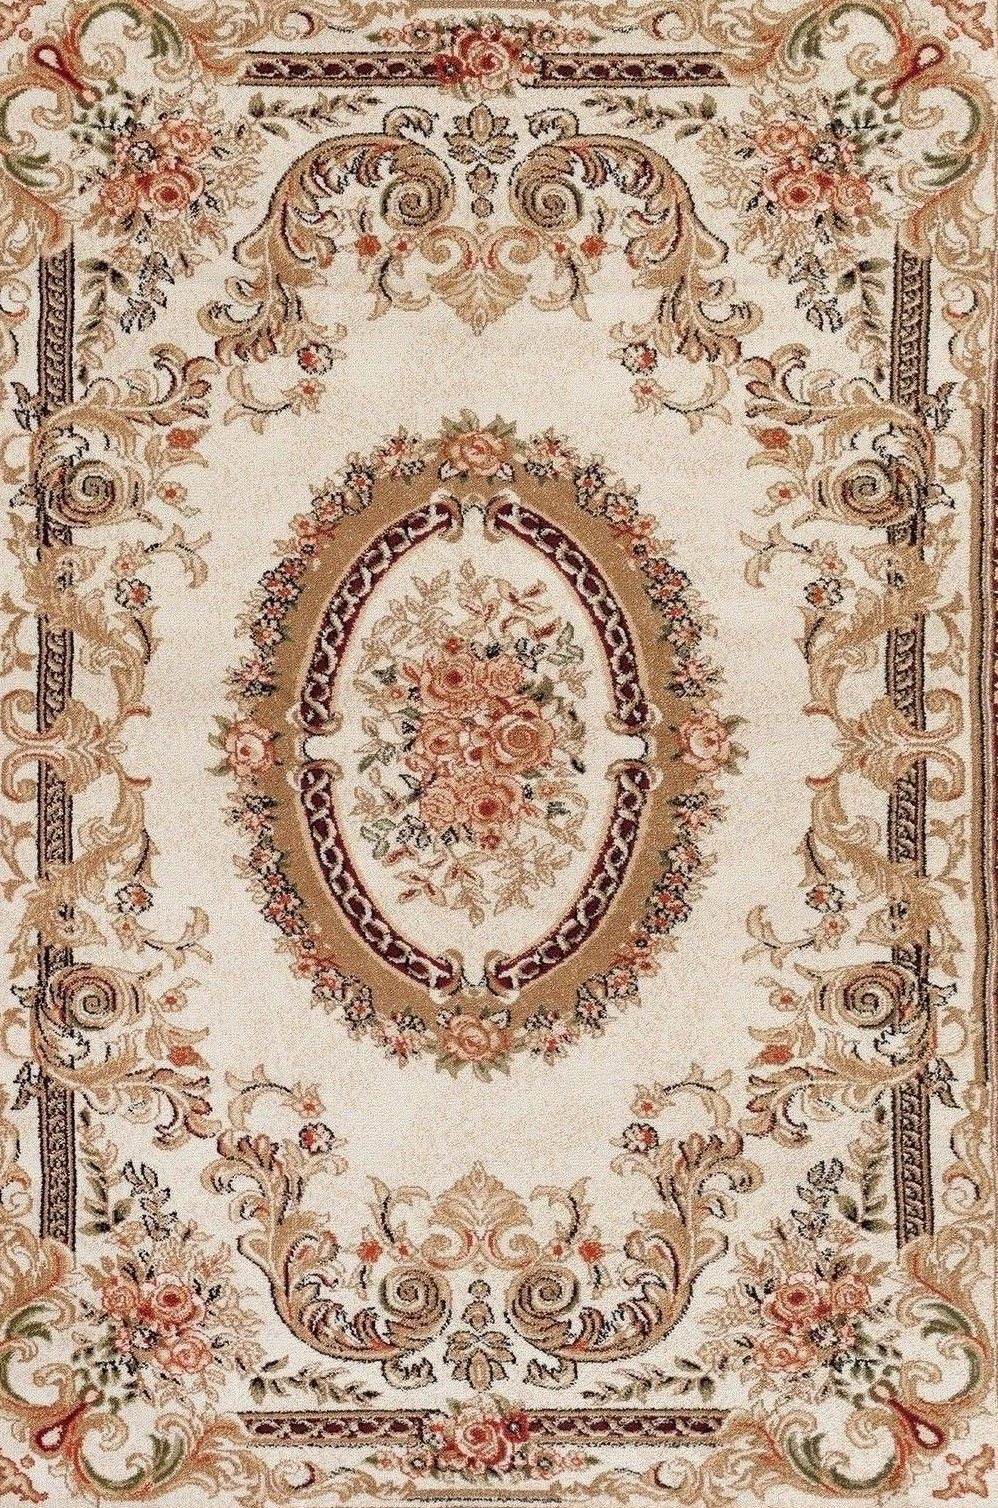 Persian Design Miniature Woven Carpet Elegant Dollhouse Rug Furniture Decorative